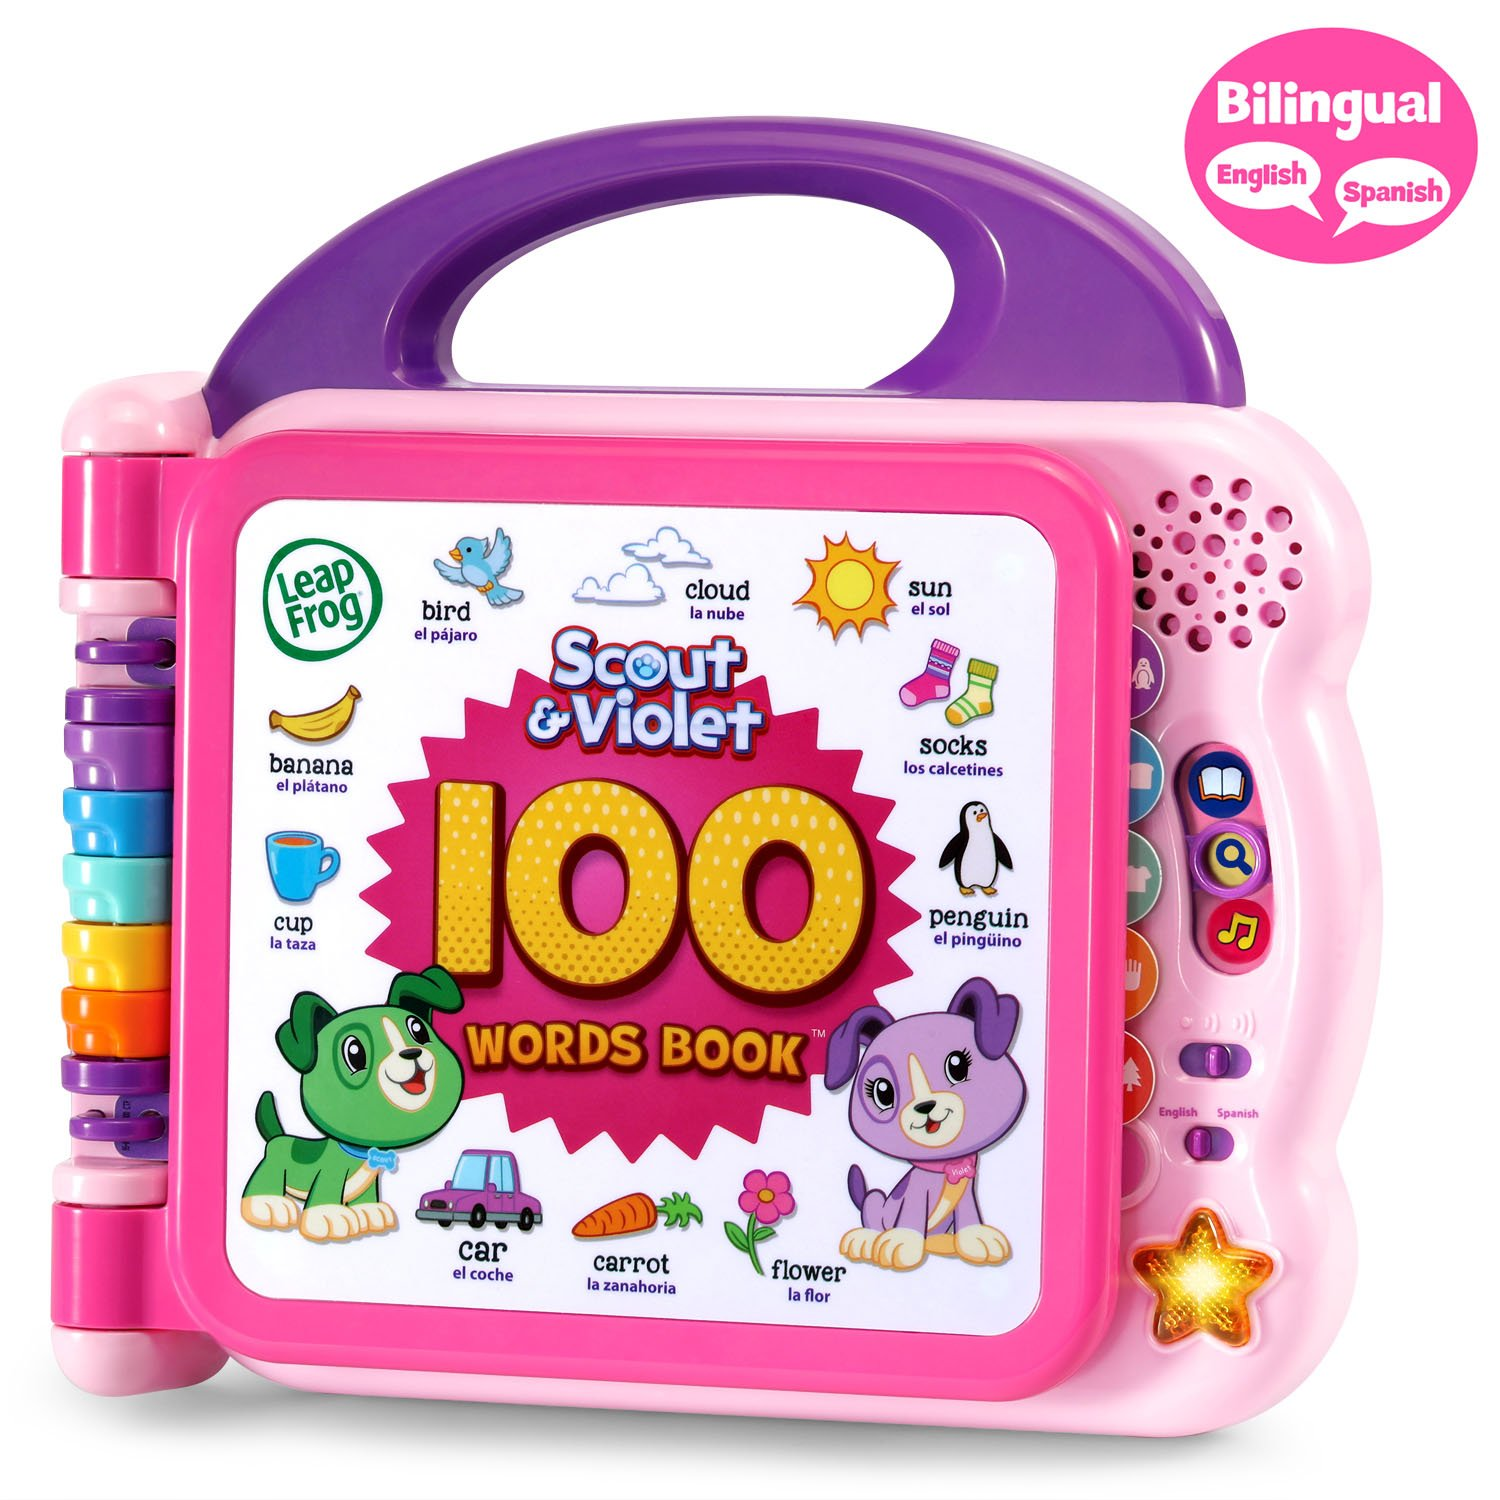 LeapFrog Scout and Violet 100 Words Book (Amazon Exclusive) by LeapFrog (Image #2)